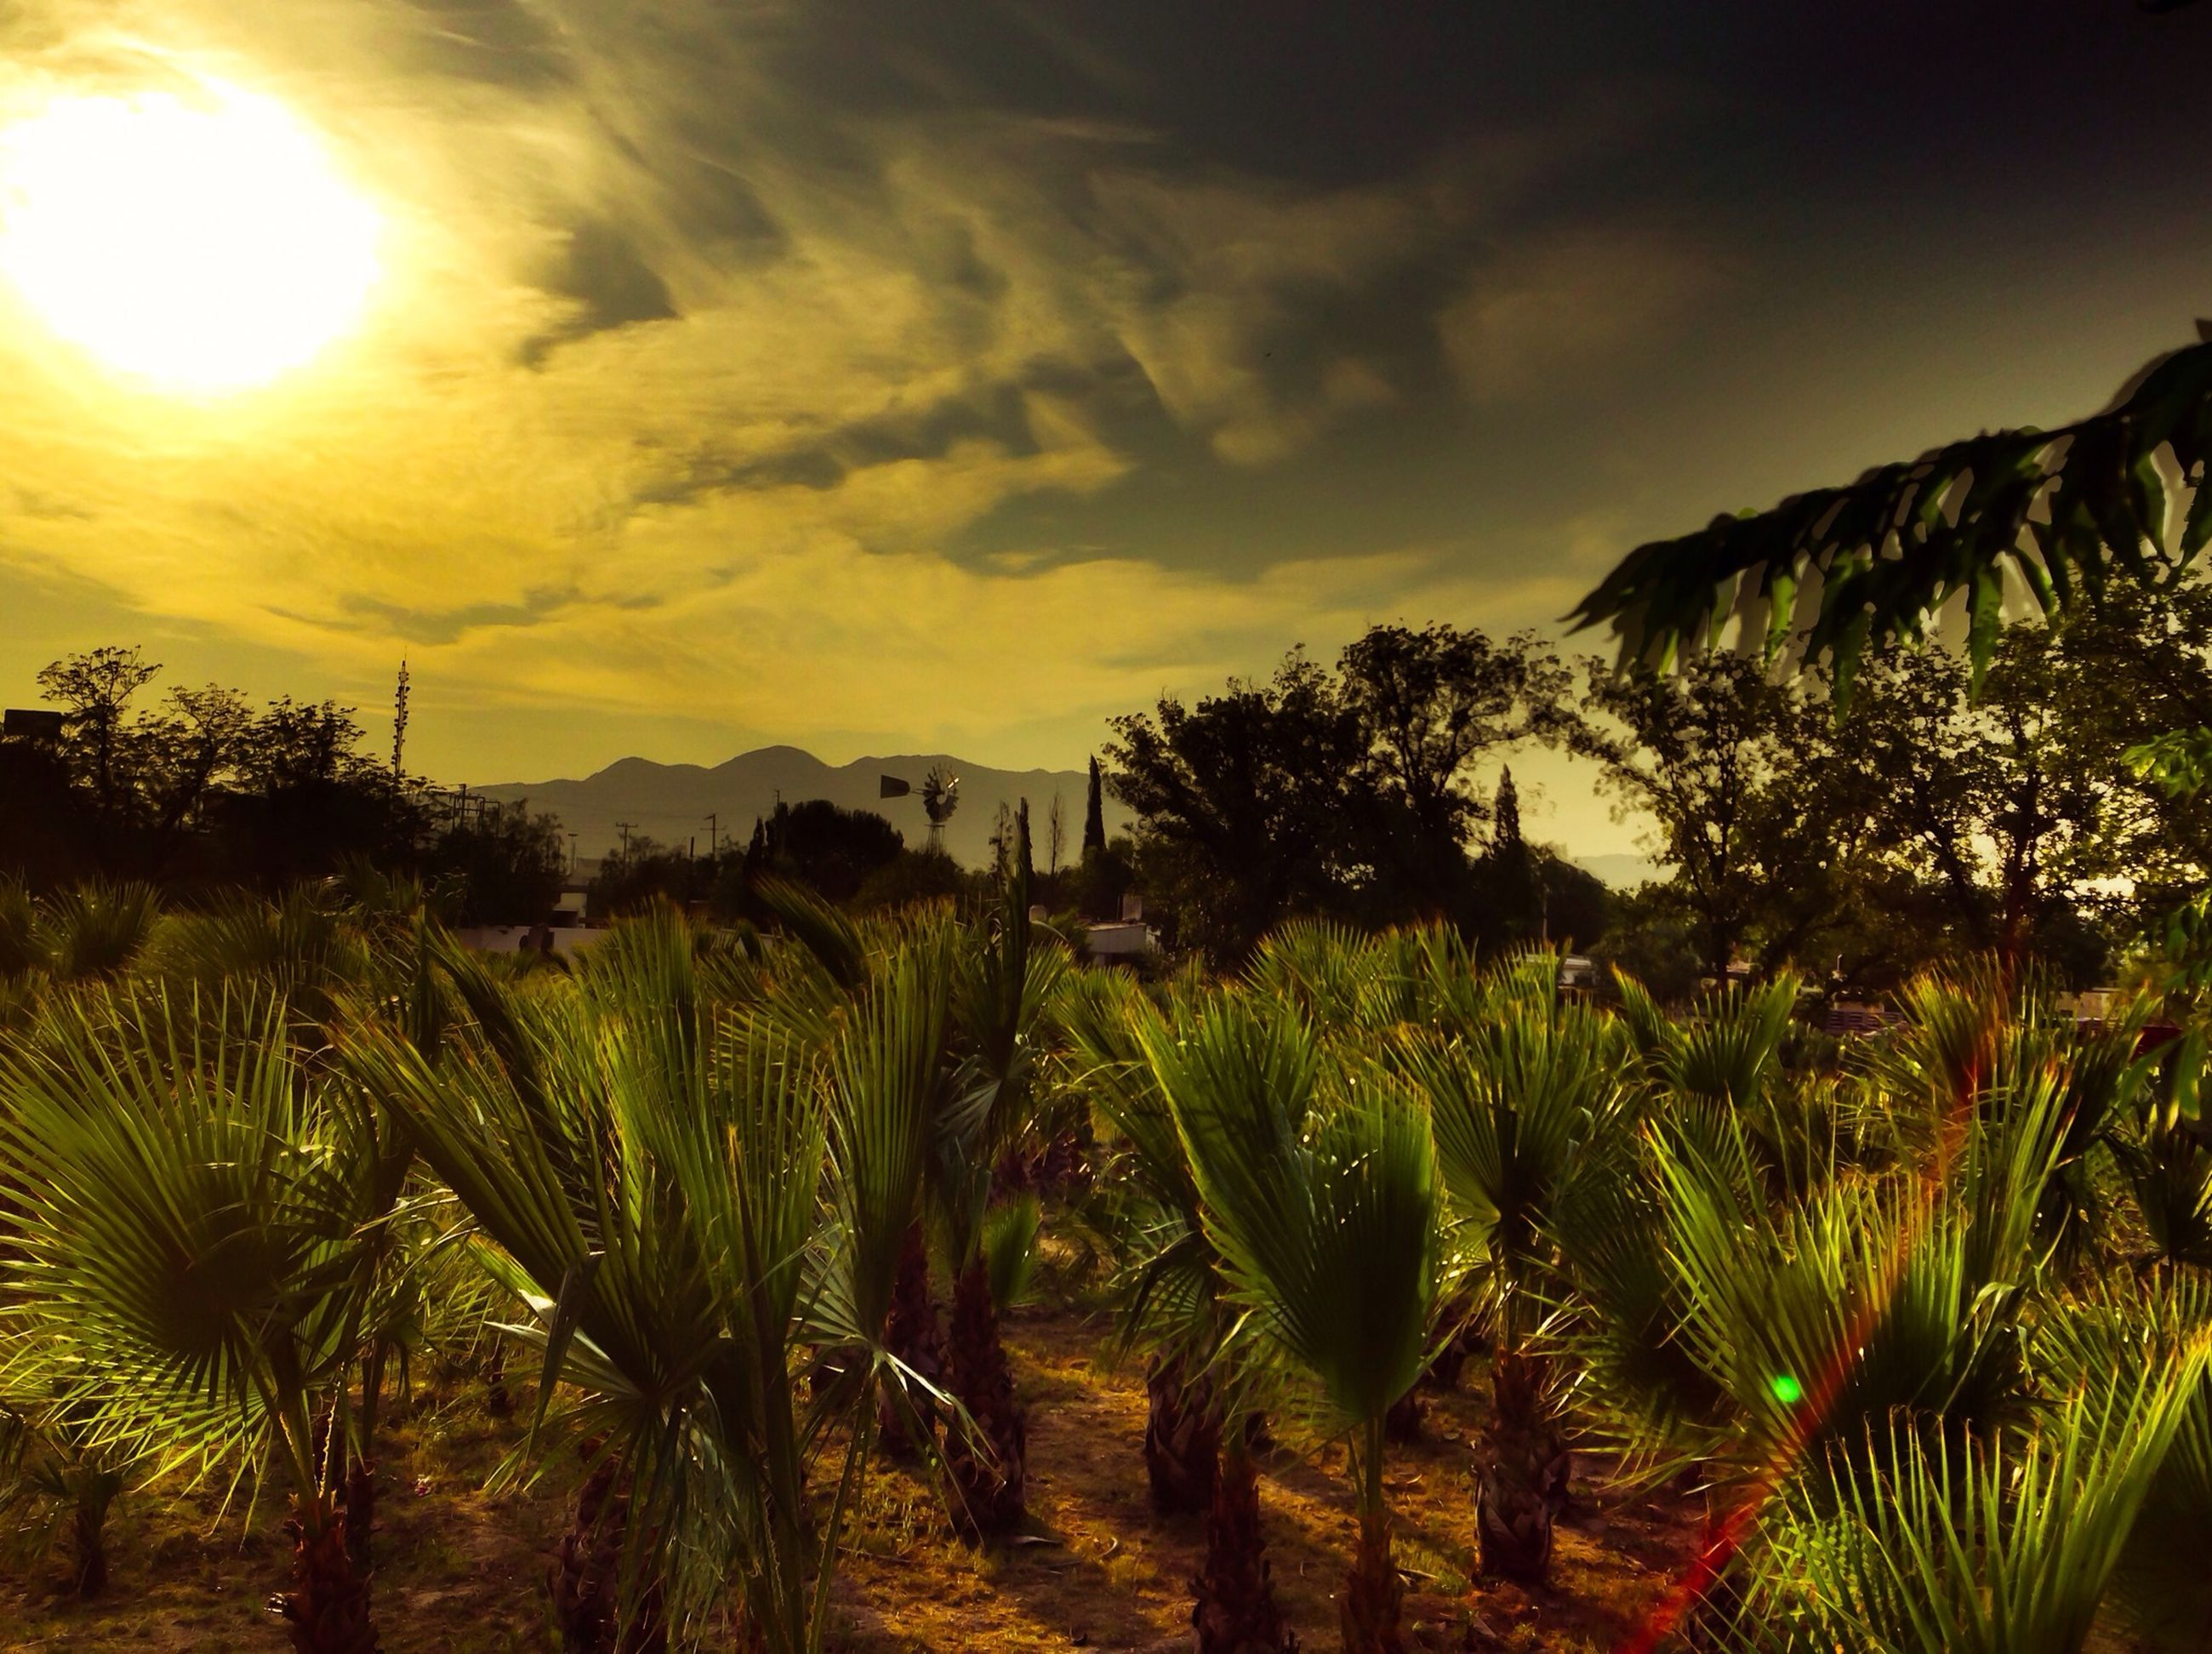 sunset, sky, growth, tranquil scene, tranquility, beauty in nature, nature, scenics, landscape, palm tree, plant, rural scene, agriculture, field, tree, cloud - sky, crop, sun, idyllic, sunlight